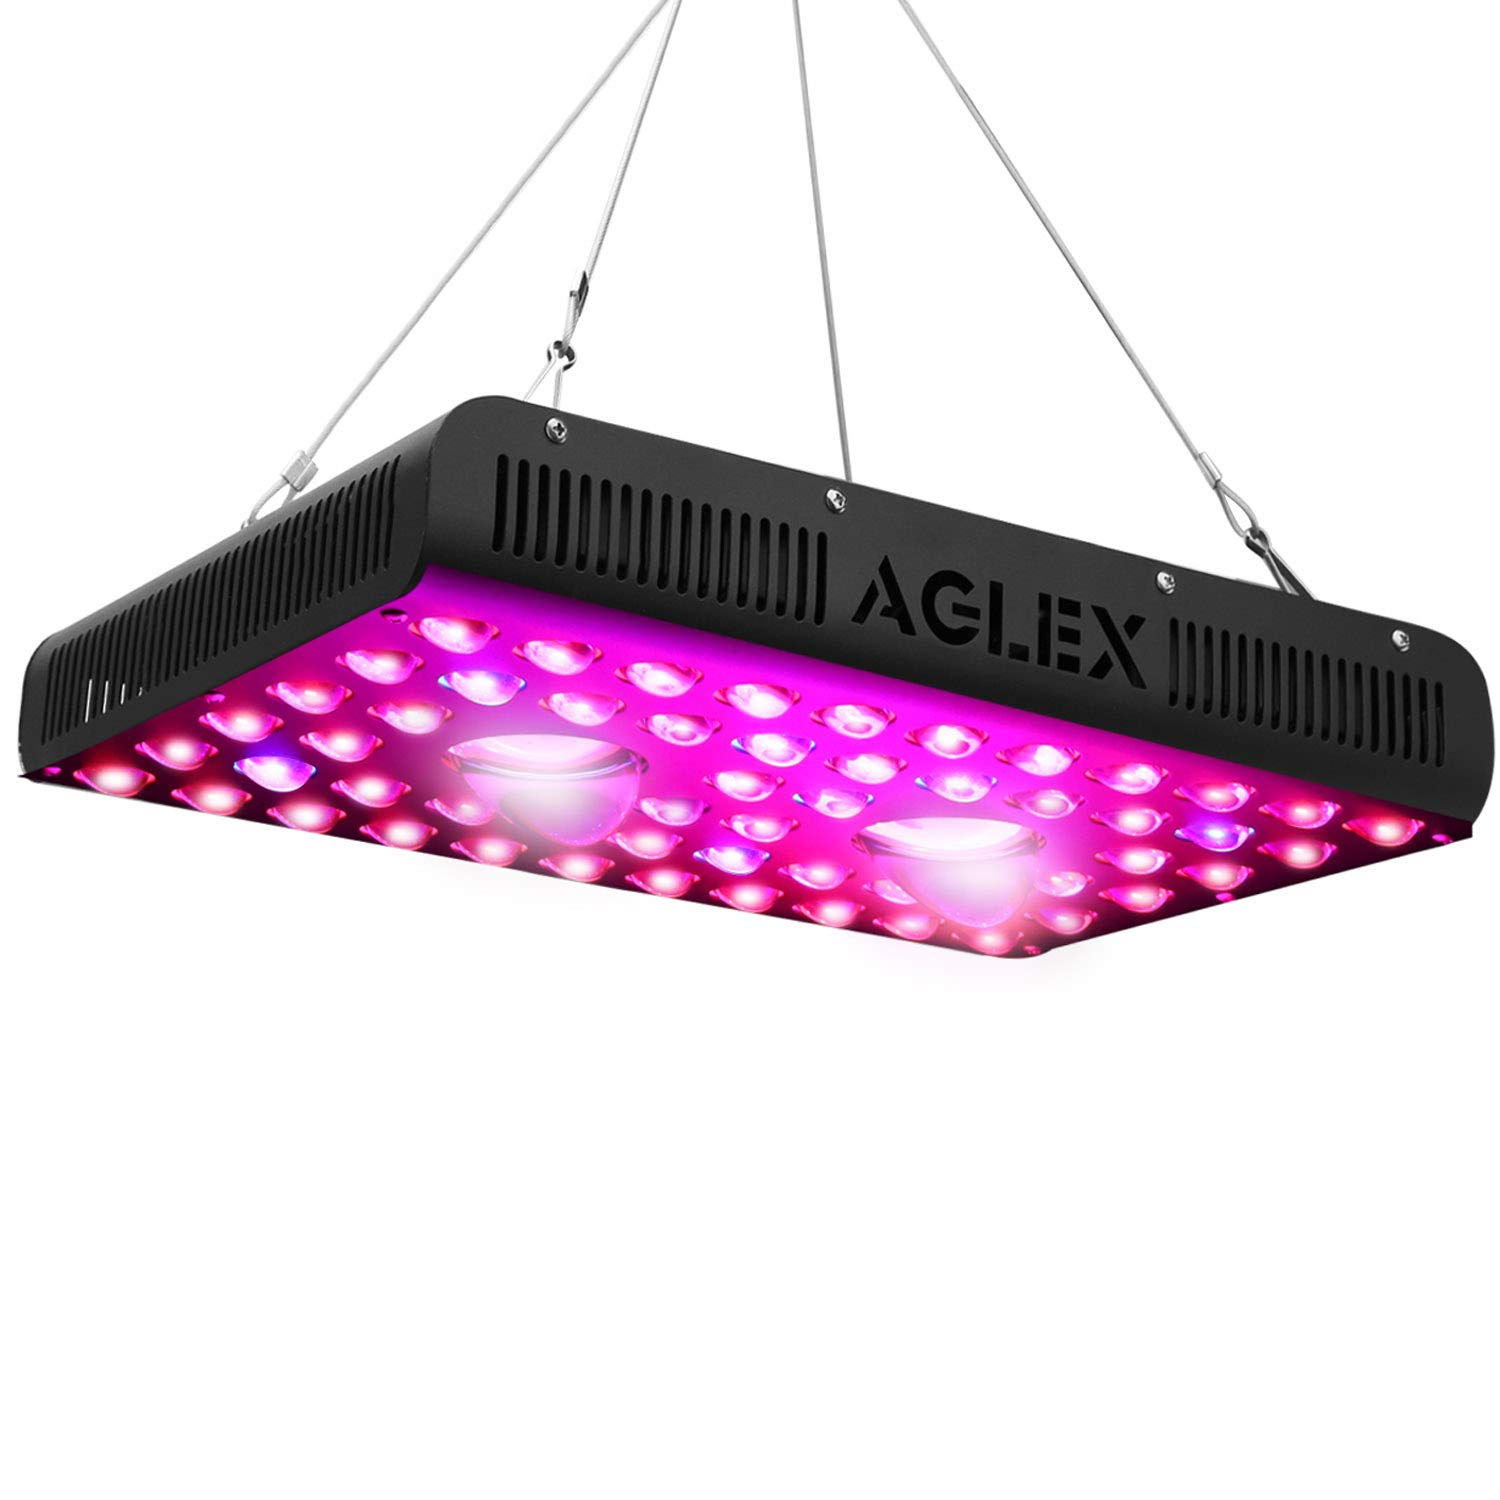 AGLEX 1200W COB LED Grow Light, Full Spectrum UV IR Reflector Series Plant Grow Lamp, with Daisy Chain, Veg and Bloom Switch, for Hydroponic Greenhouse Indoor Plant Veg and Flower by AGLEX